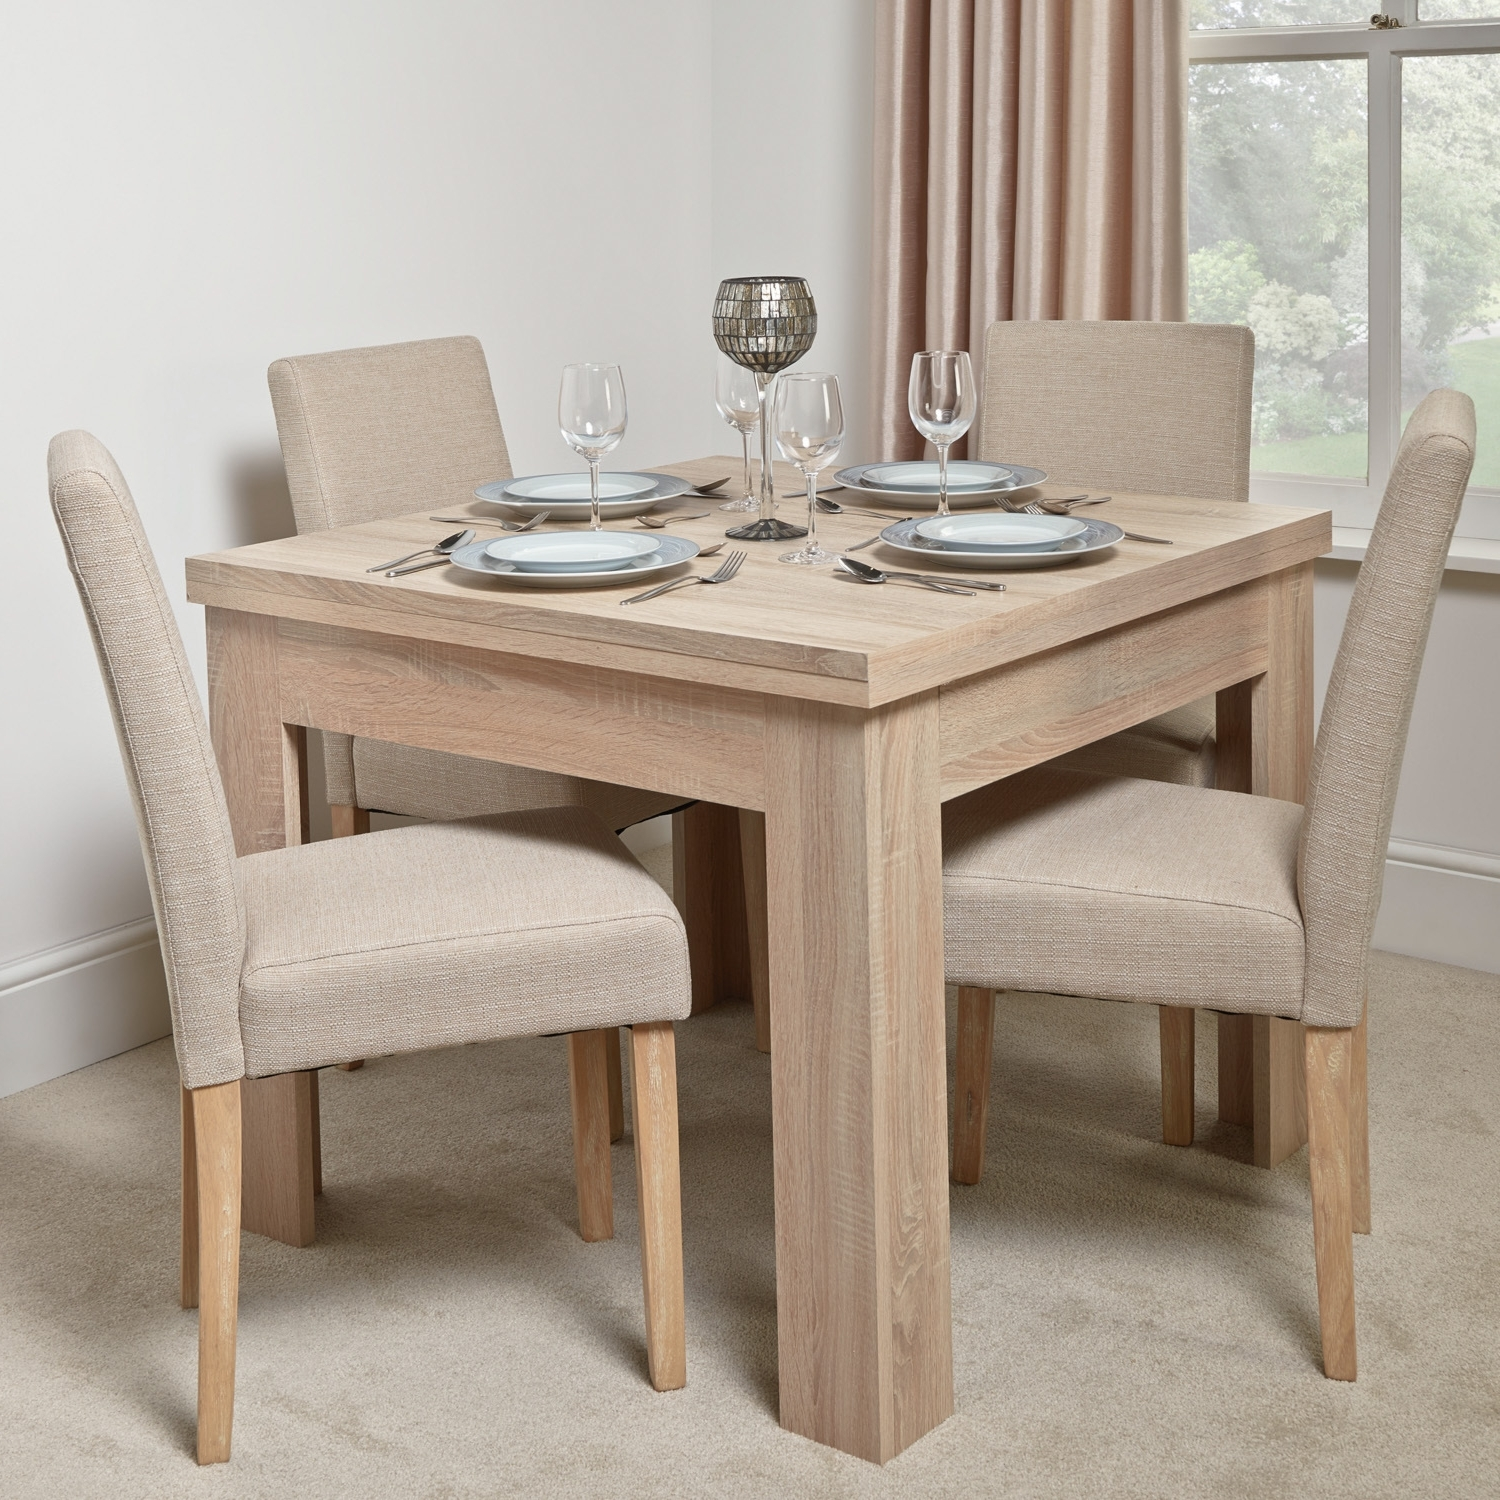 Calpe Flip Extending Dining Table Inside Most Recent Square Extendable Dining Tables And Chairs (View 11 of 25)